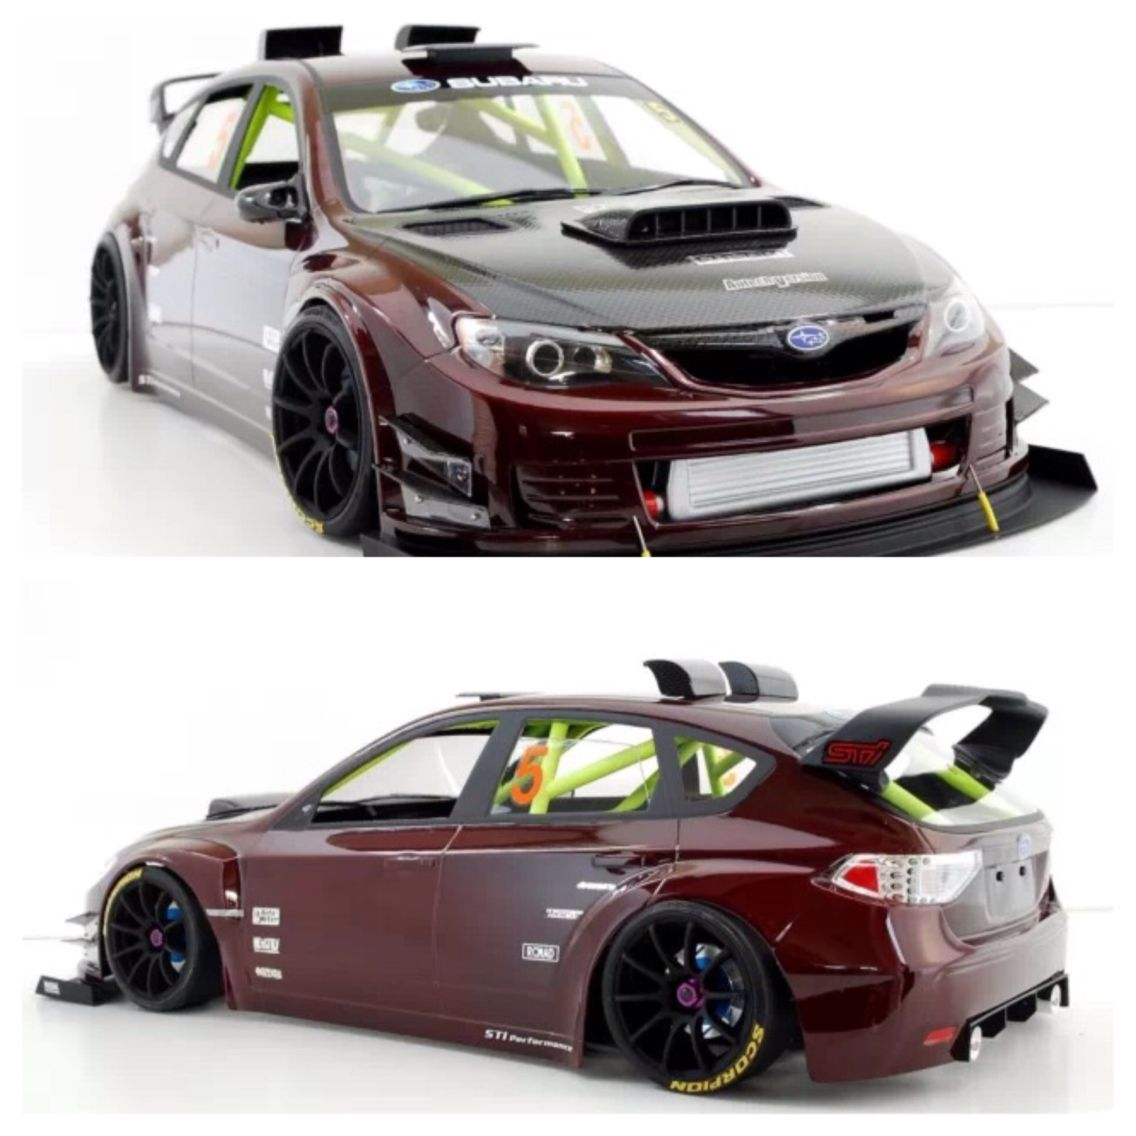 Rc Drift Car Subaru Impreza Sti Body Radio Control Cars